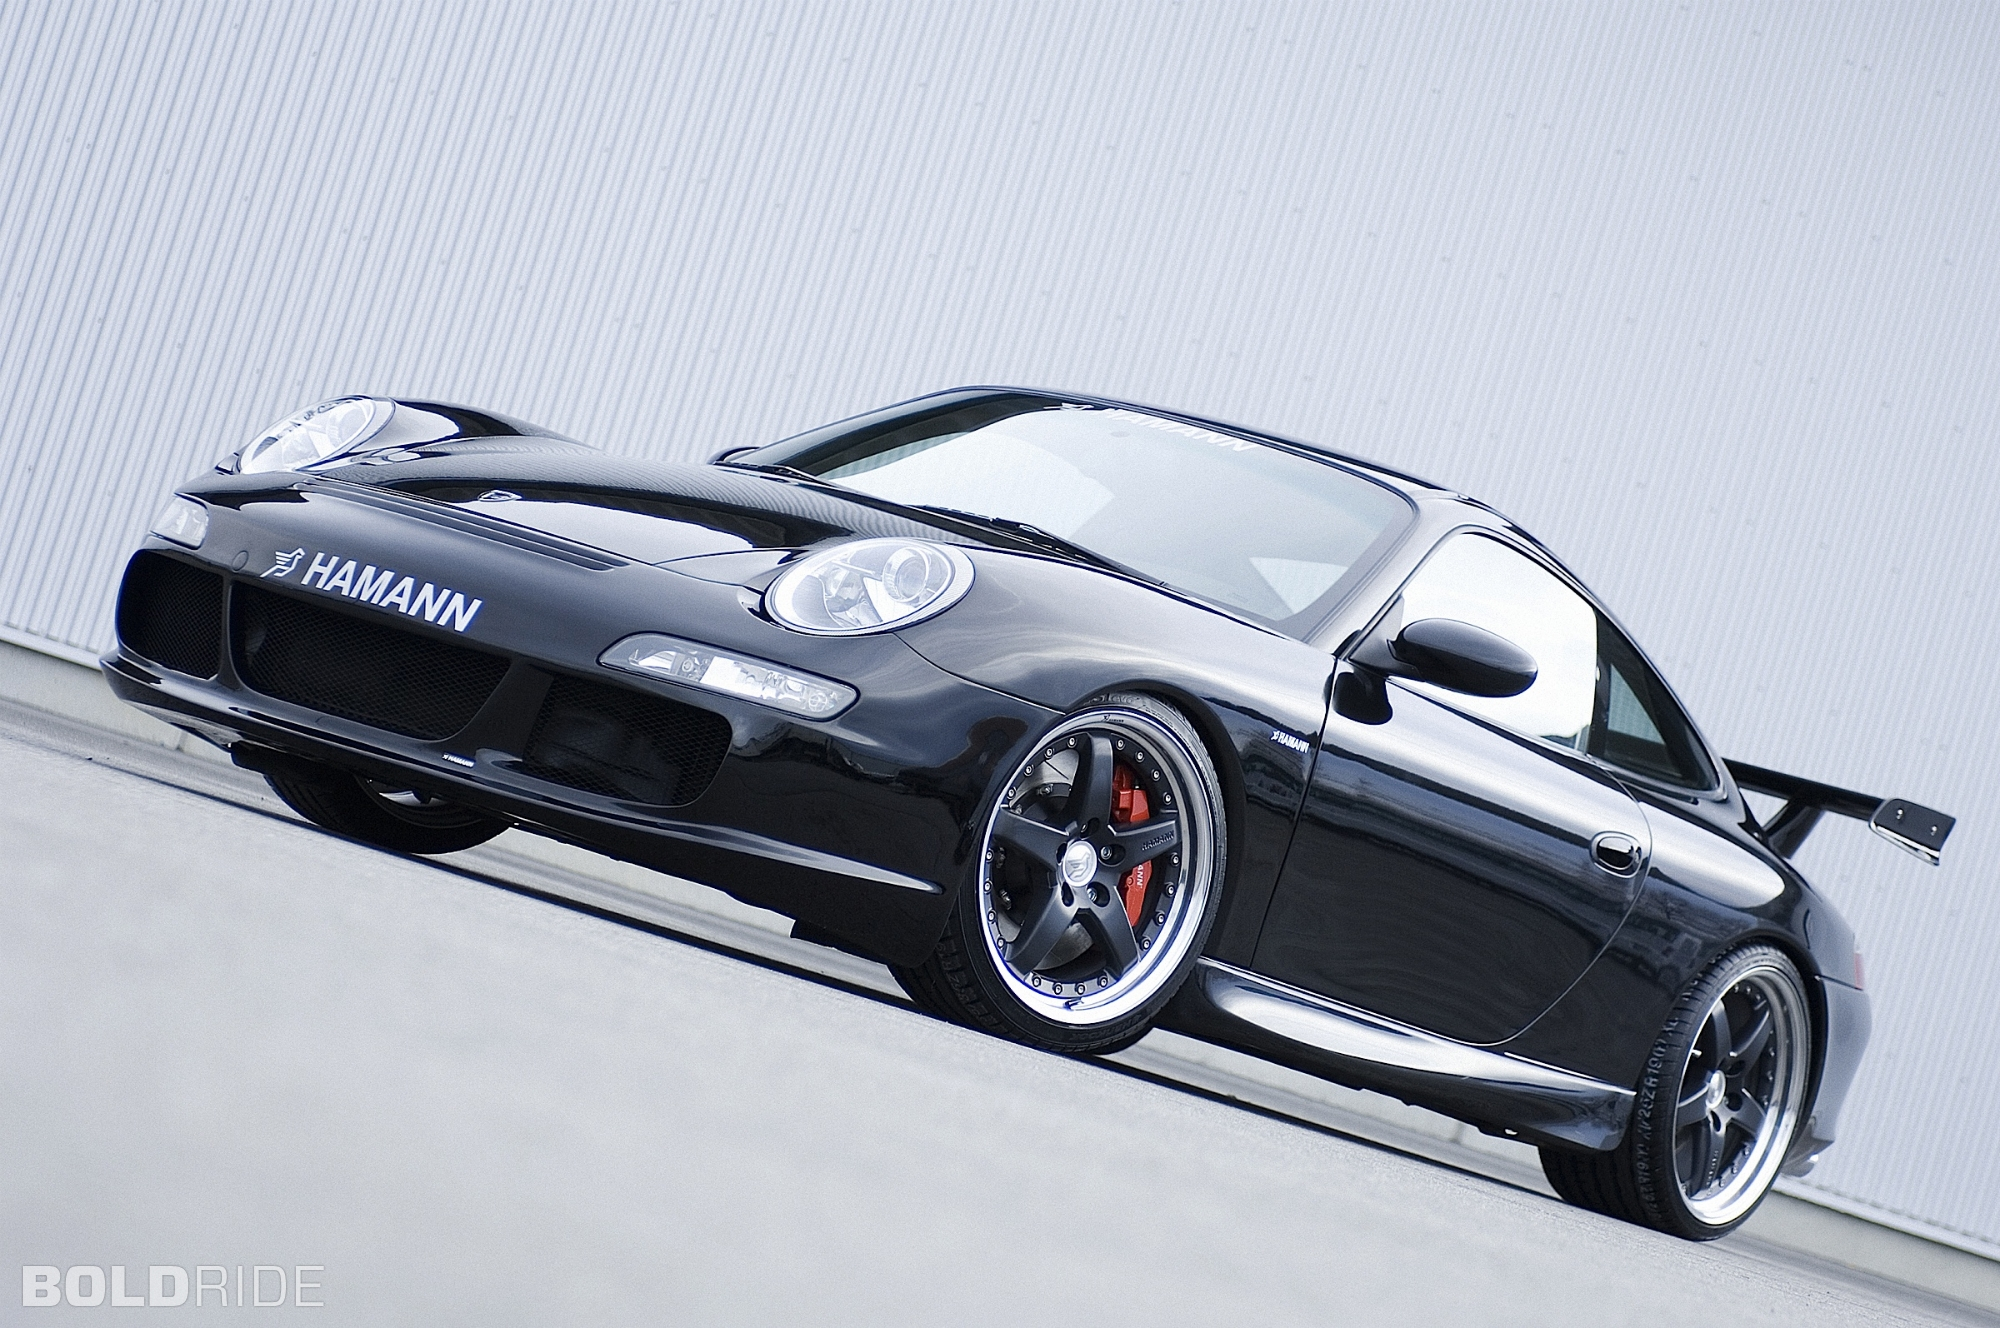 2018 Hamann Porsche 996 Turbo photo - 4